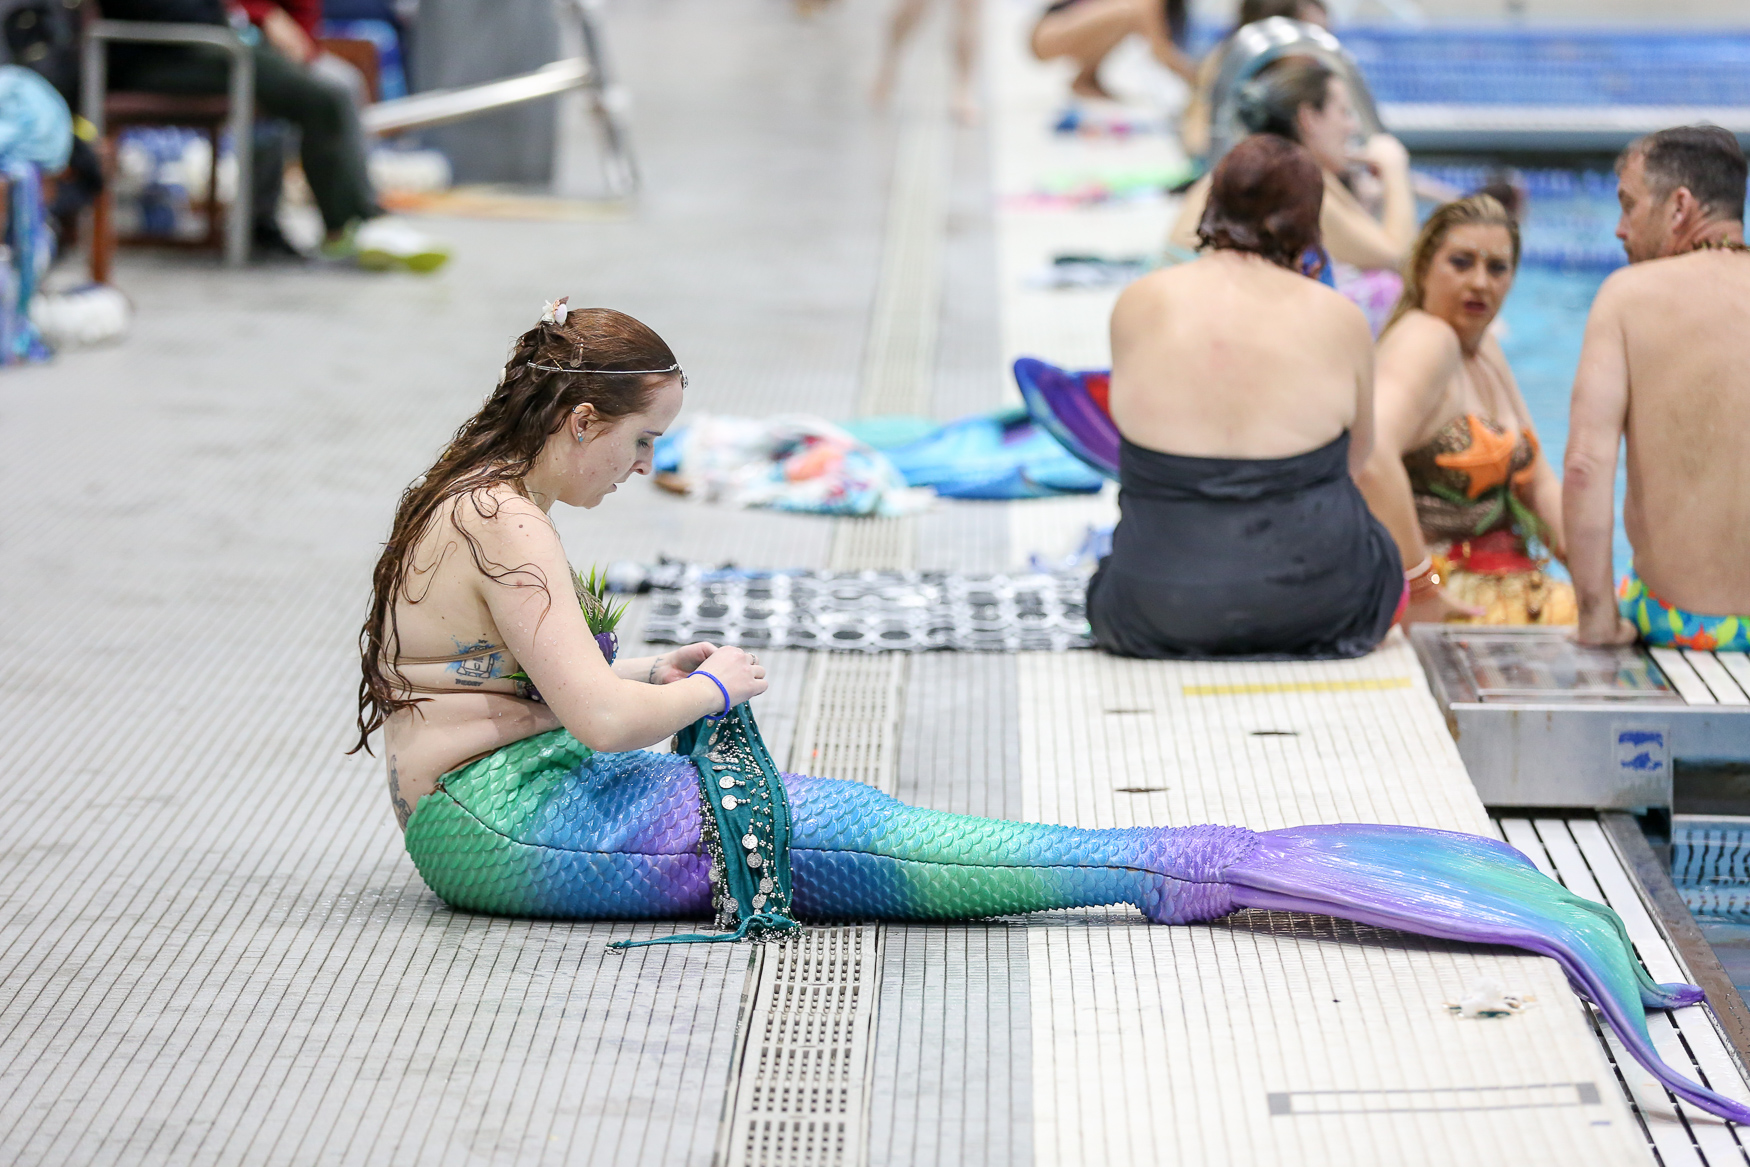 The MerMagic Con splashed into the Freedom Aquatic and Fitness Center in Manassas, Virginia this weekend. Hundreds of people of all ages from all over the world joined in on the fun, donning mermaid (and merman) fins and splashing through the water for photo shoots, classes on how to be a better mermaid and safety in the water. The convention, which runs from Friday to Sunday, February 24, also has offerings from mermaid-centric vendors. However, the whole point is to just have fun. (Amanda Andrade-Rhoades/DC Refined)